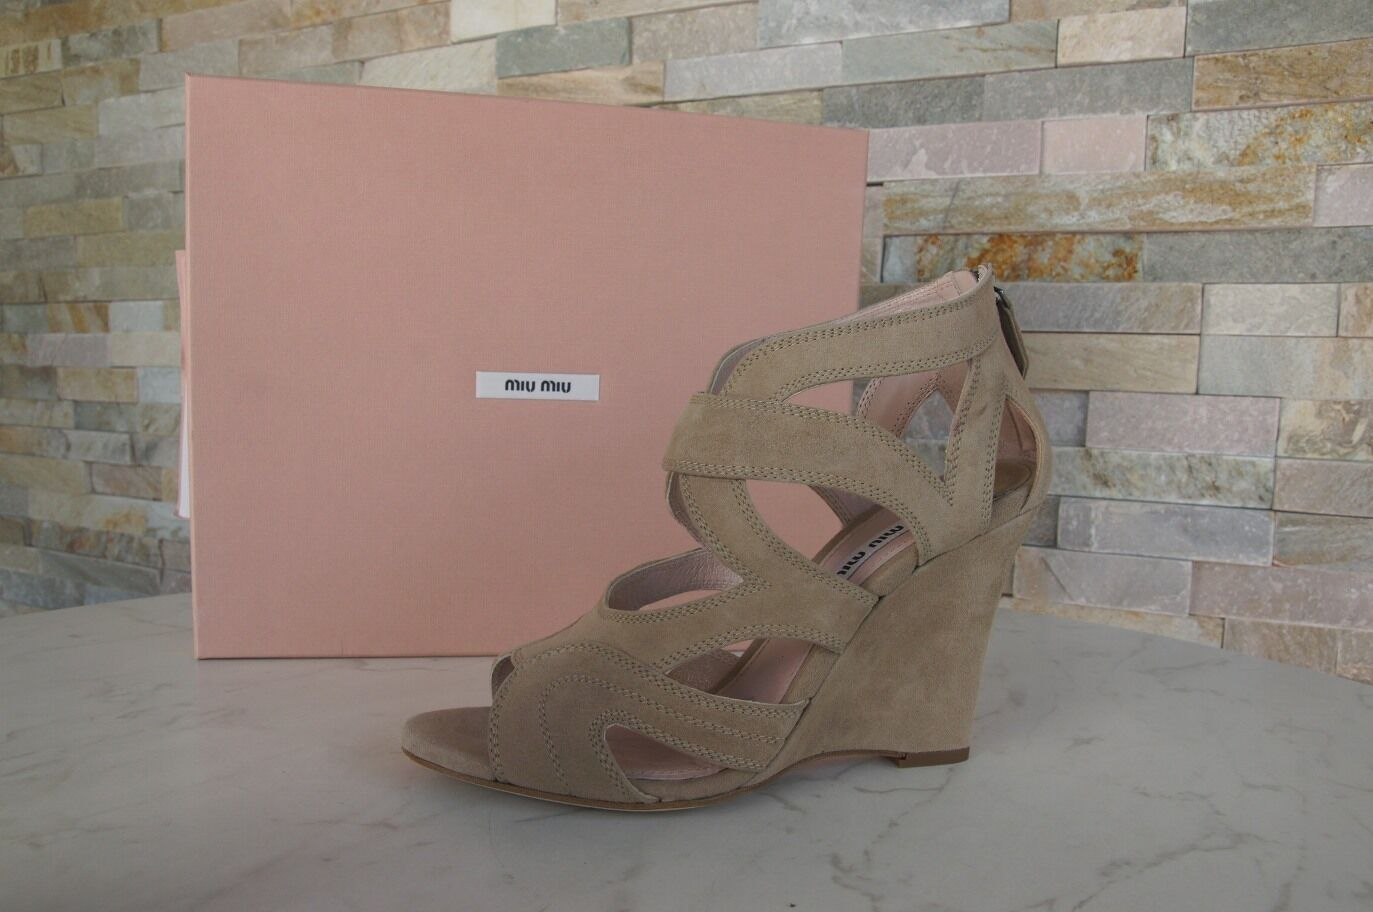 Mio Miu  Sz.40 Wedge Sandals Sandals scarpe Sand New Precedentemente  Negozio 2018